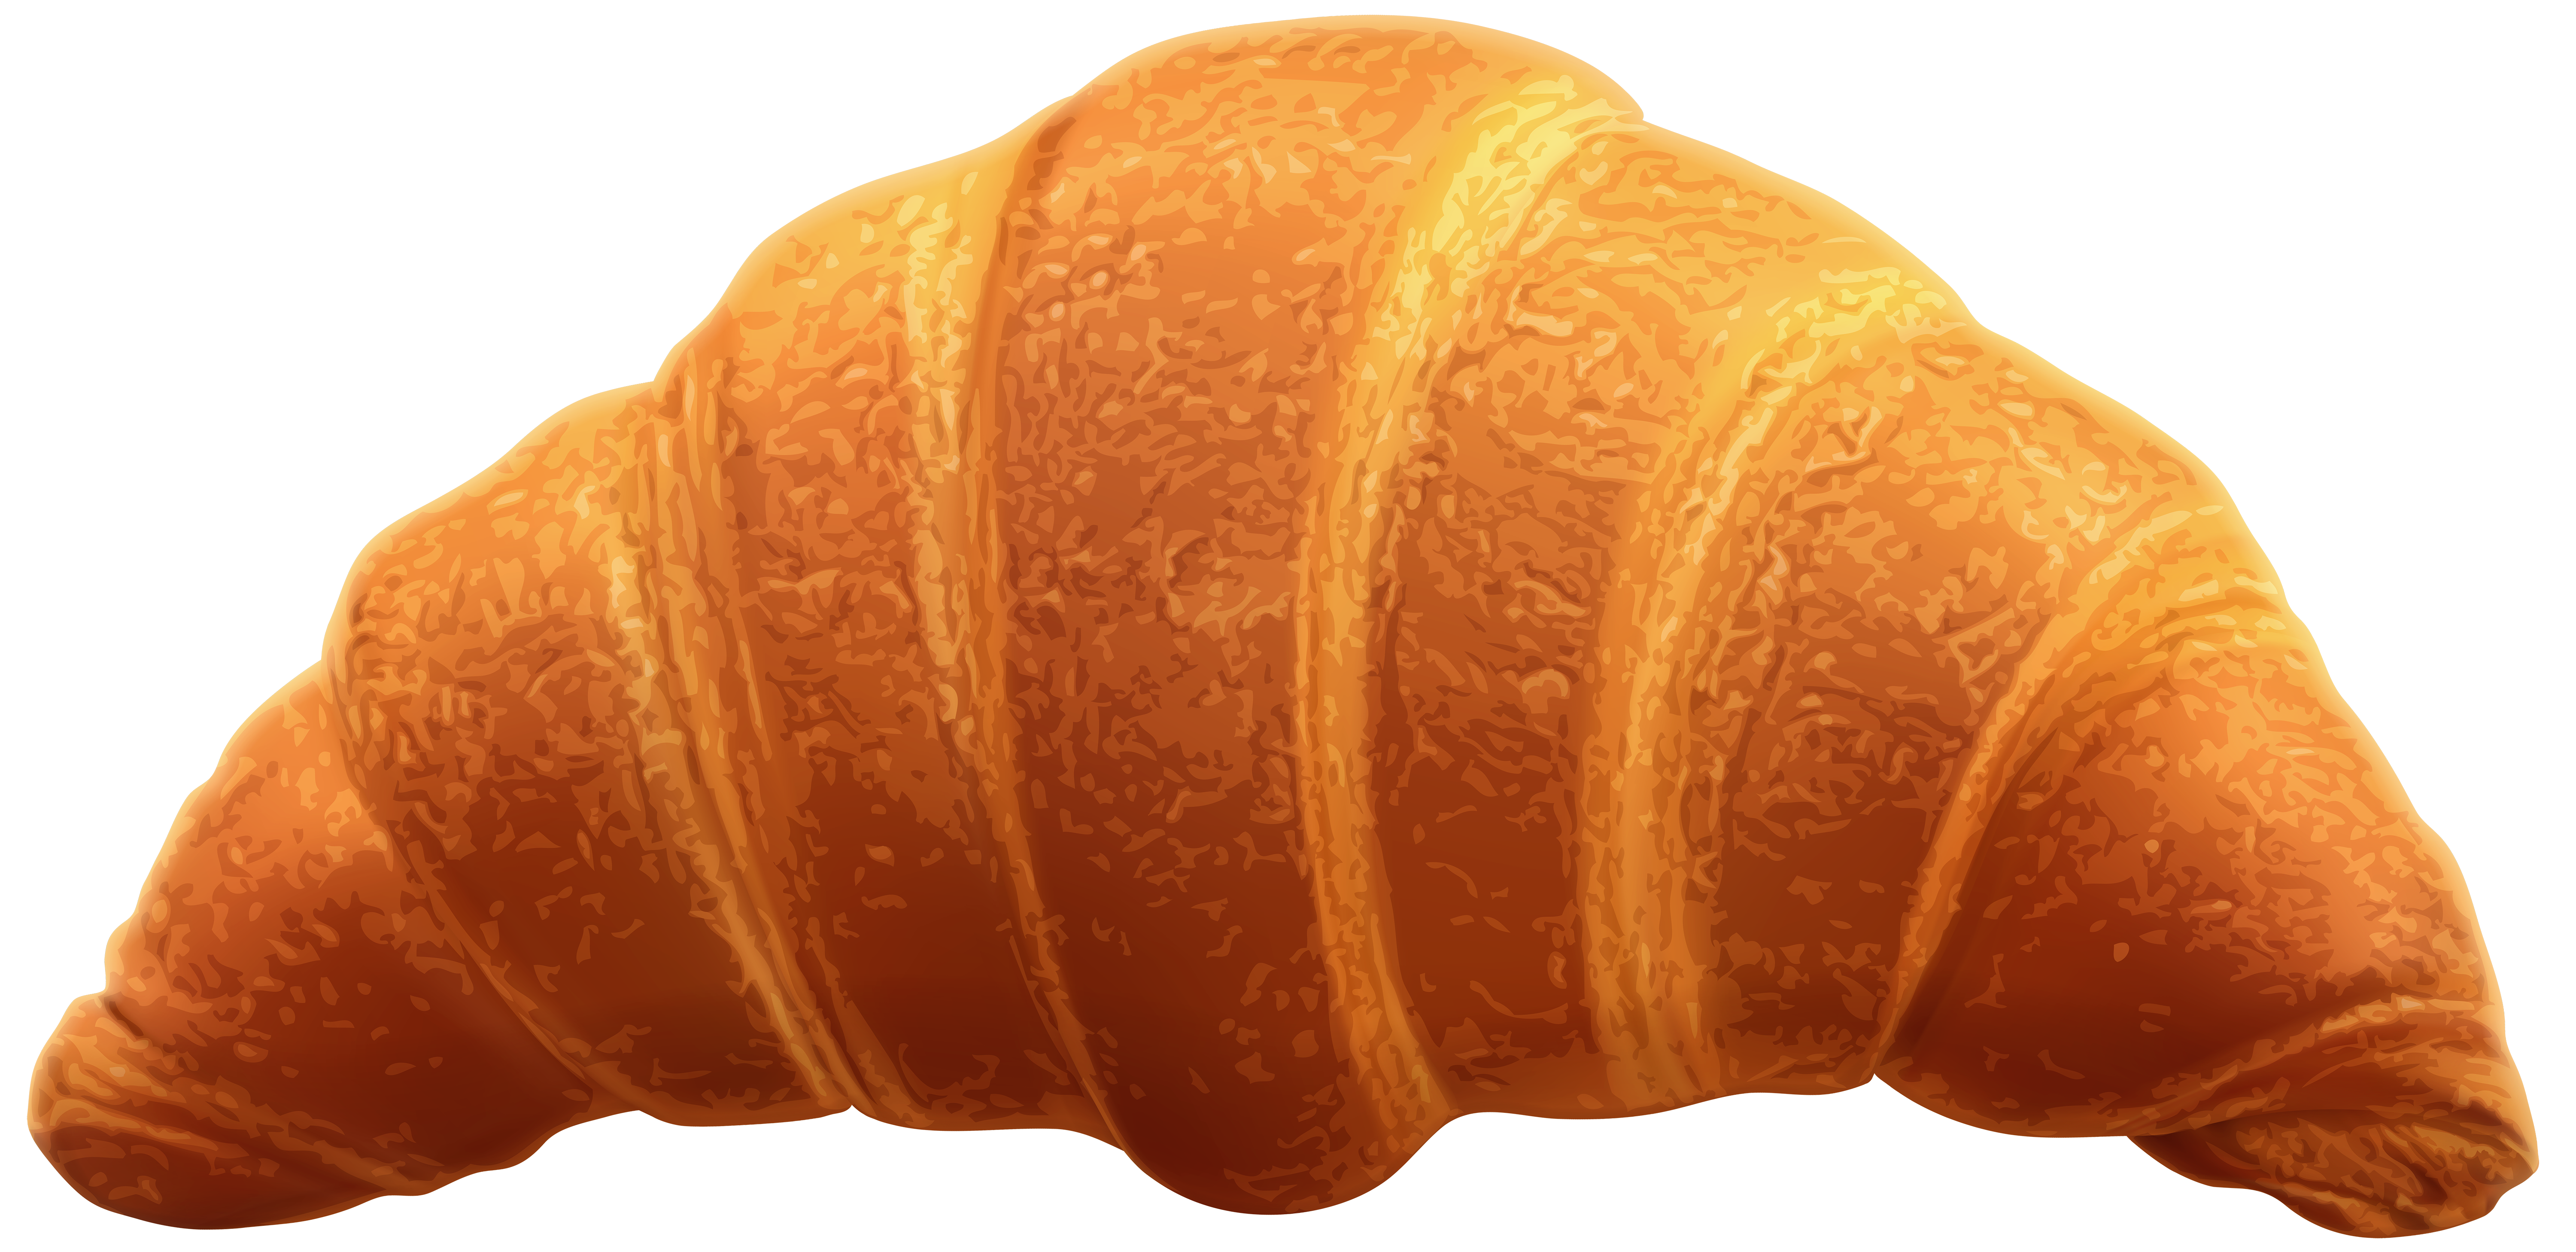 Croissant clipart Full  View PNG Image